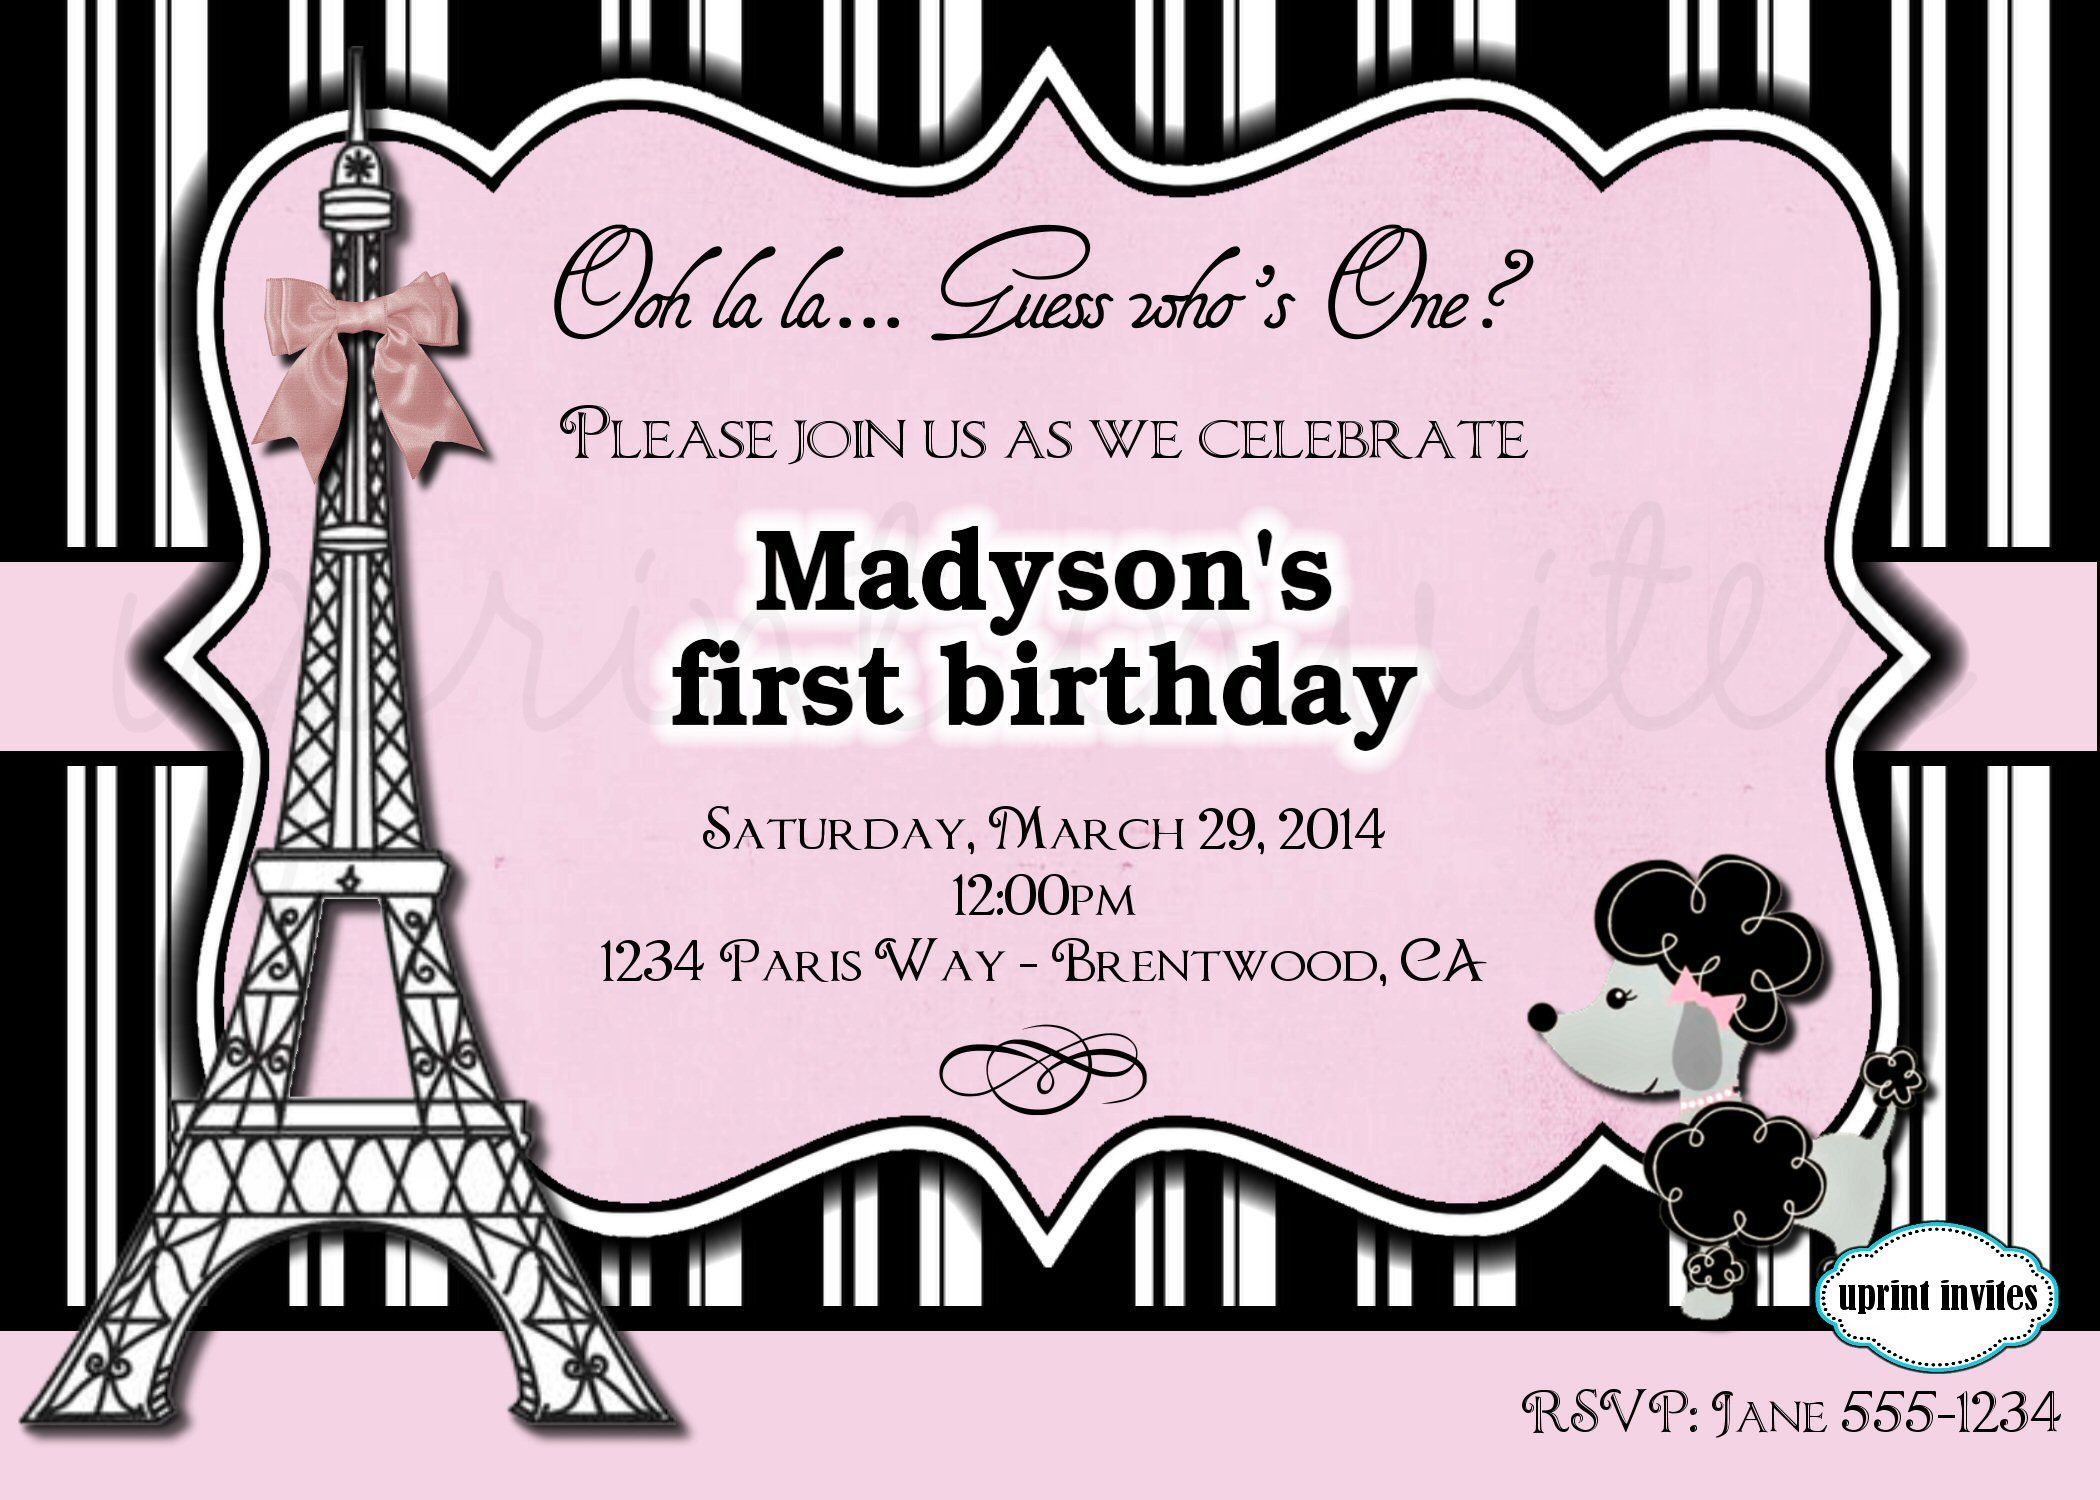 www uprint com templates - paris ooh la la invitation template